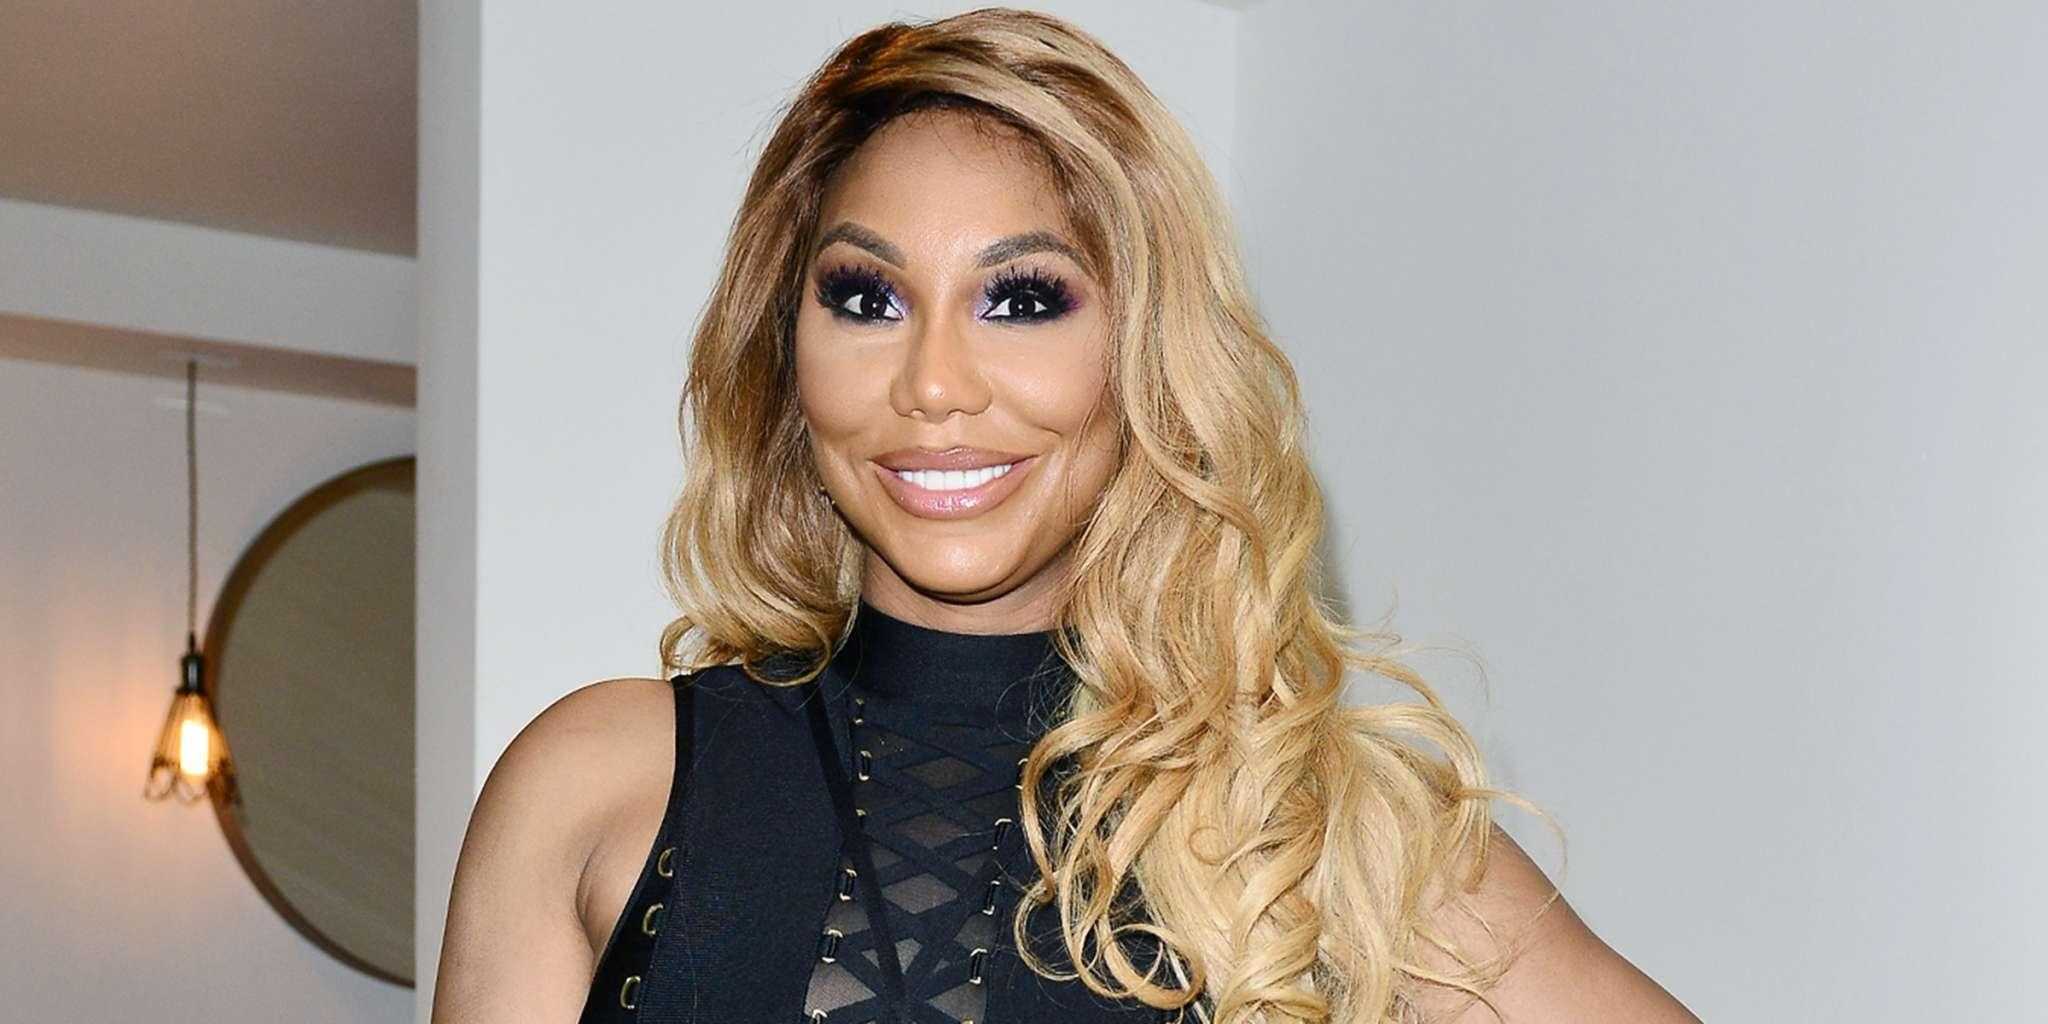 Tamar Braxton Opens Up About Her Life Following Her Scary Suicide Attempt - Here's What Her New Focus Is!